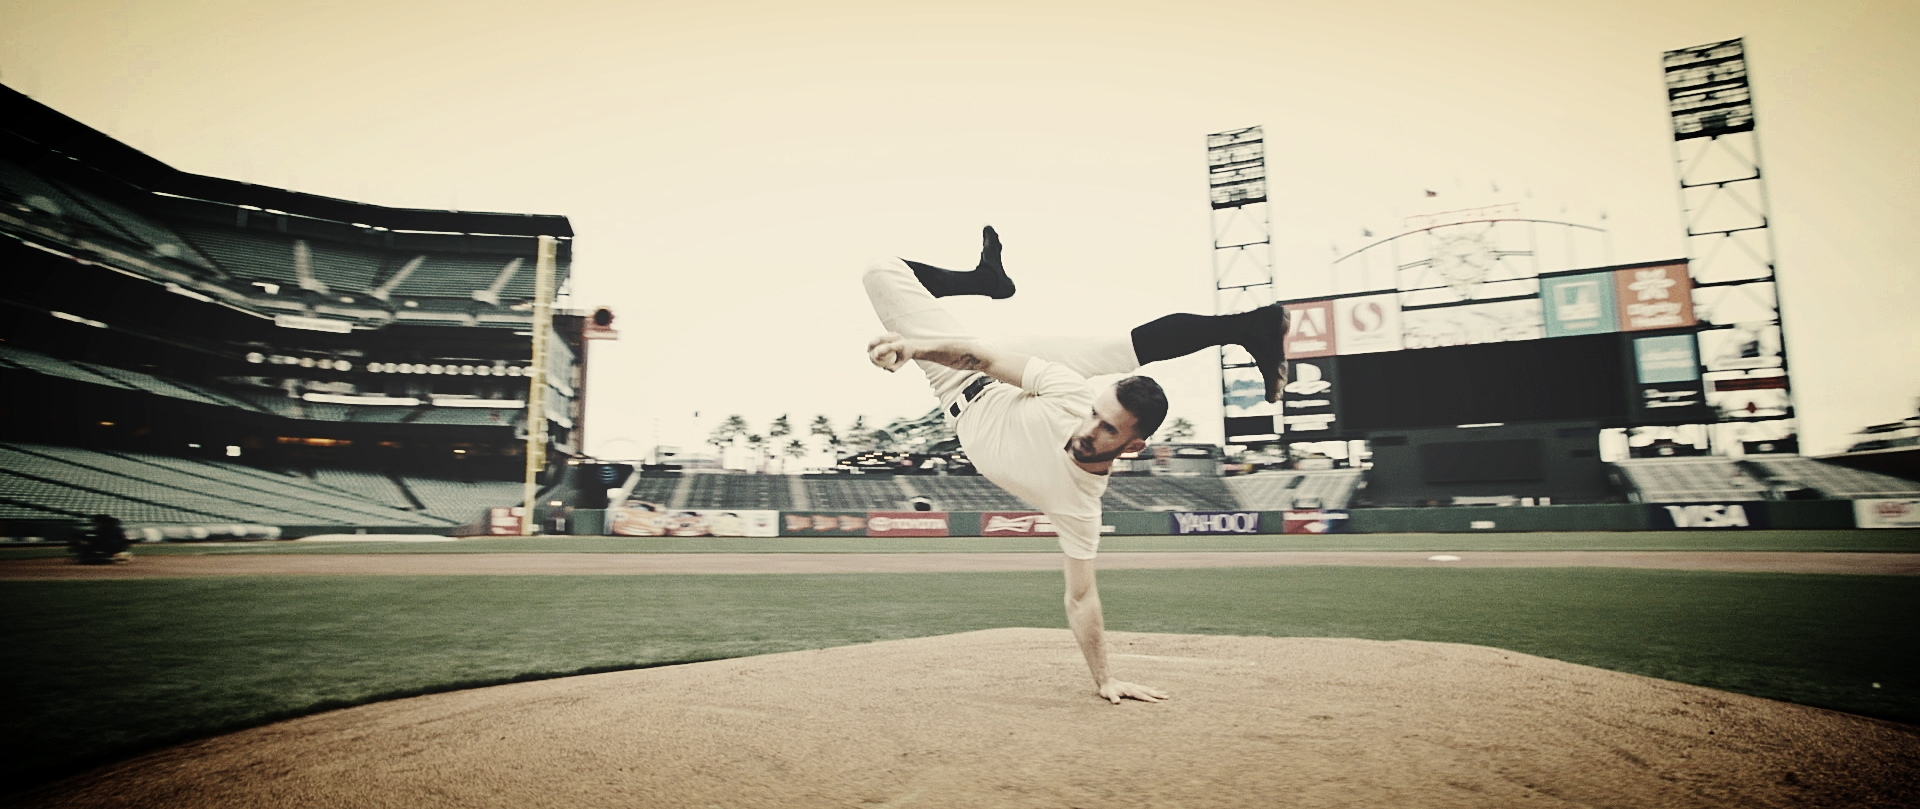 Still from 'BaseBallet: Into the Game.'